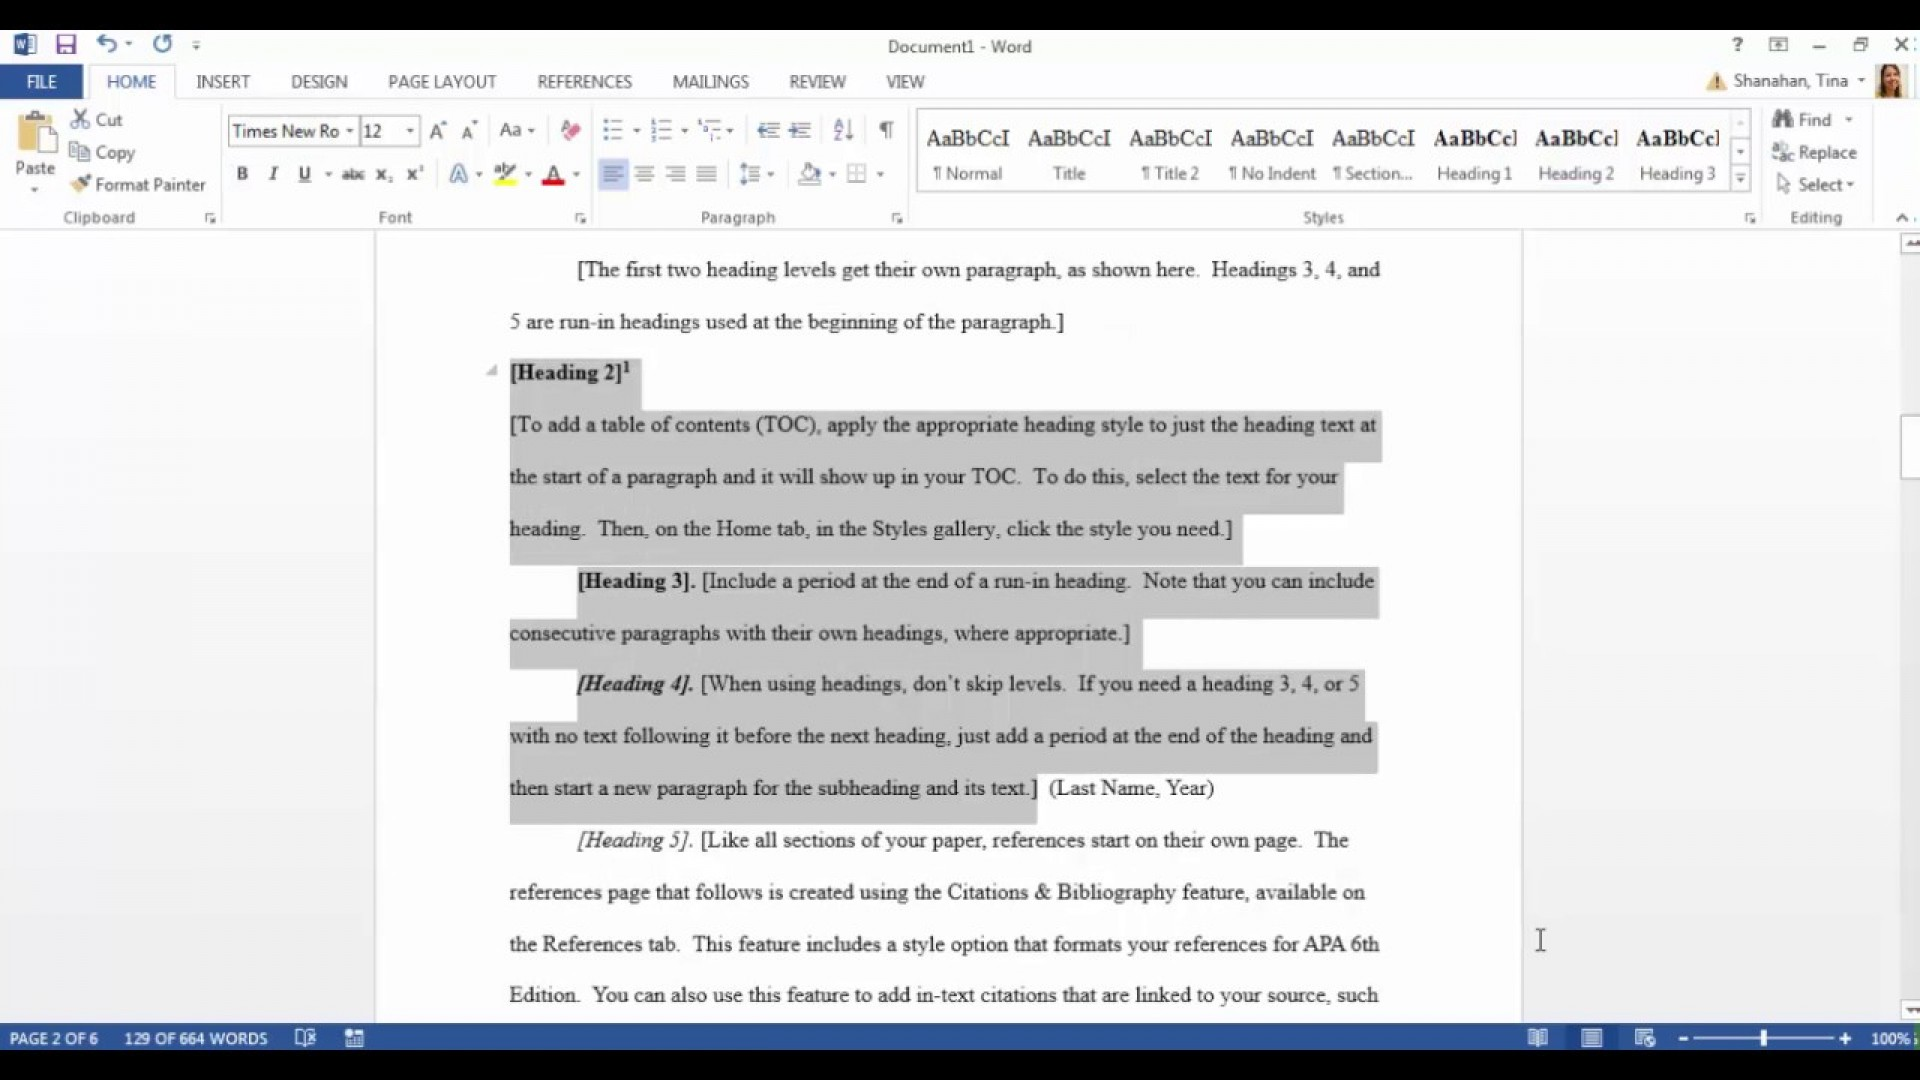 012 Maxresdefault Essay Example Apa Format Stupendous Template Papers Examples Word 2010 1920